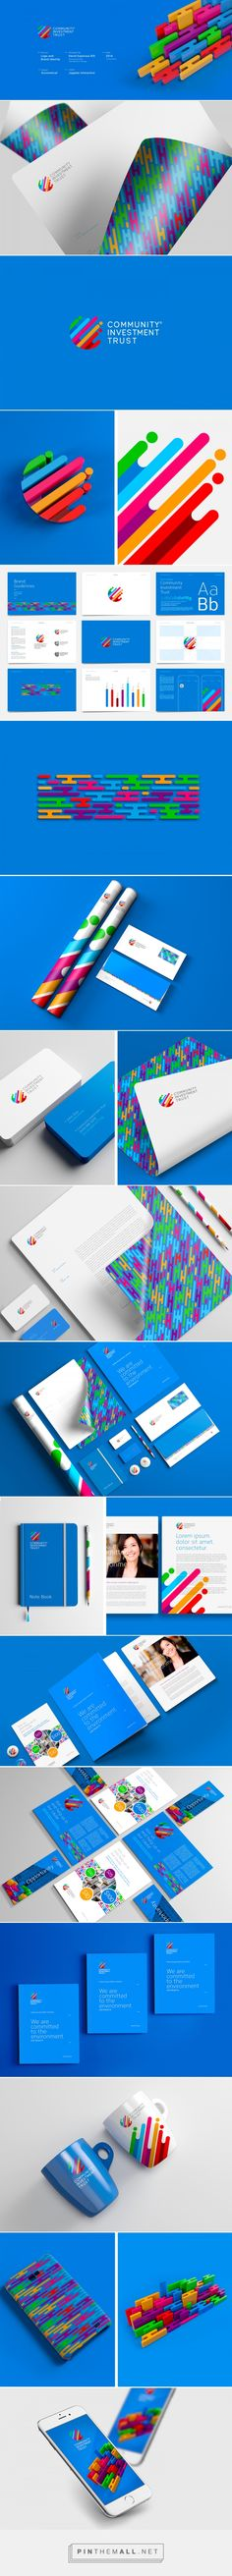 CIT - Logo and identity BY David Espinosa IDS